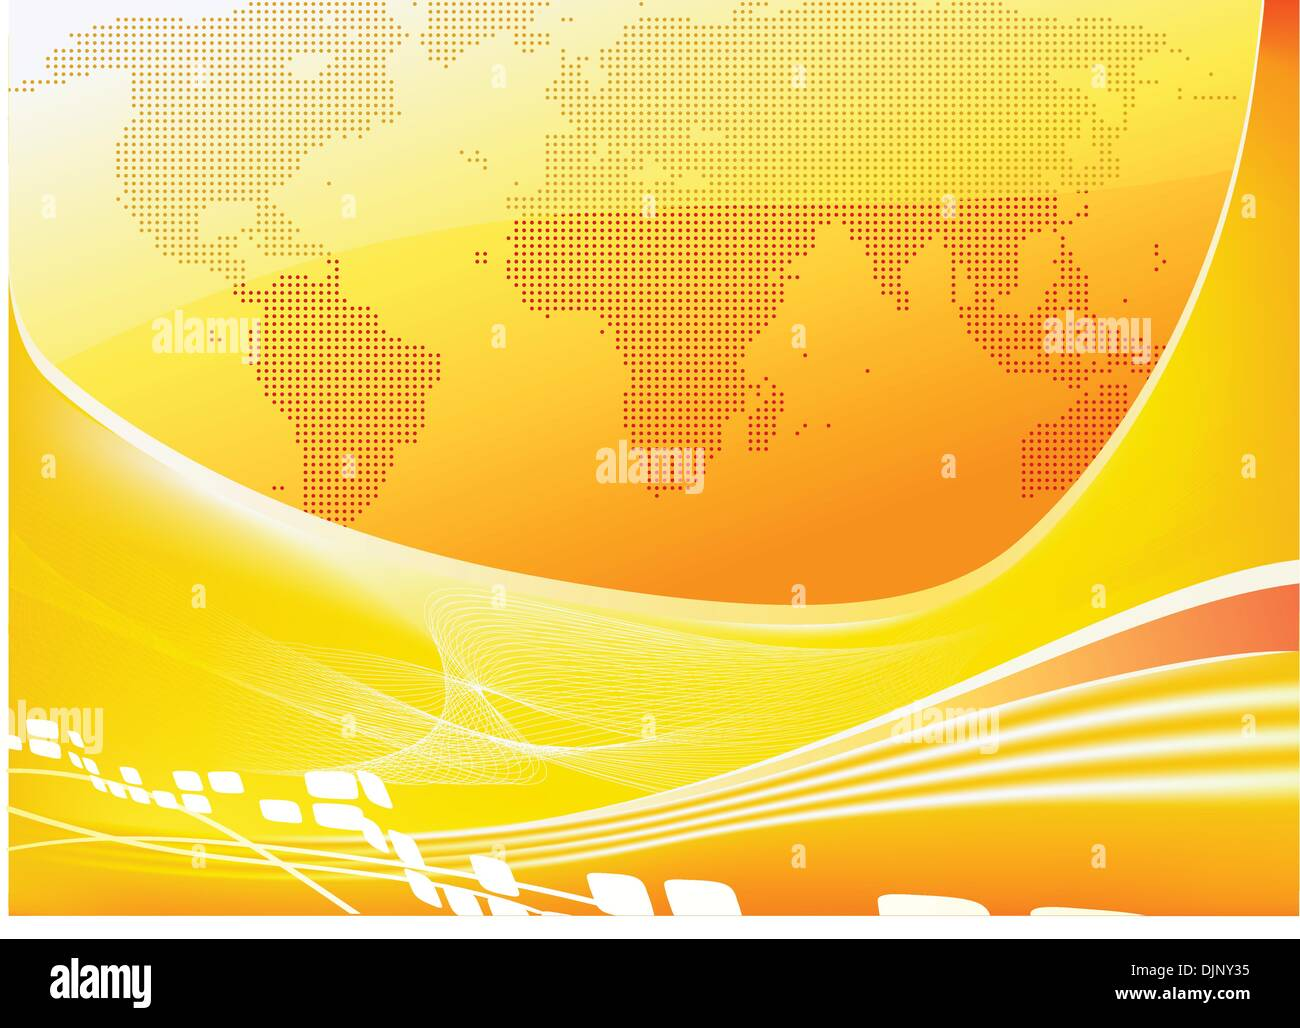 Vector illustration of stylised orange world map background - Stock Vector